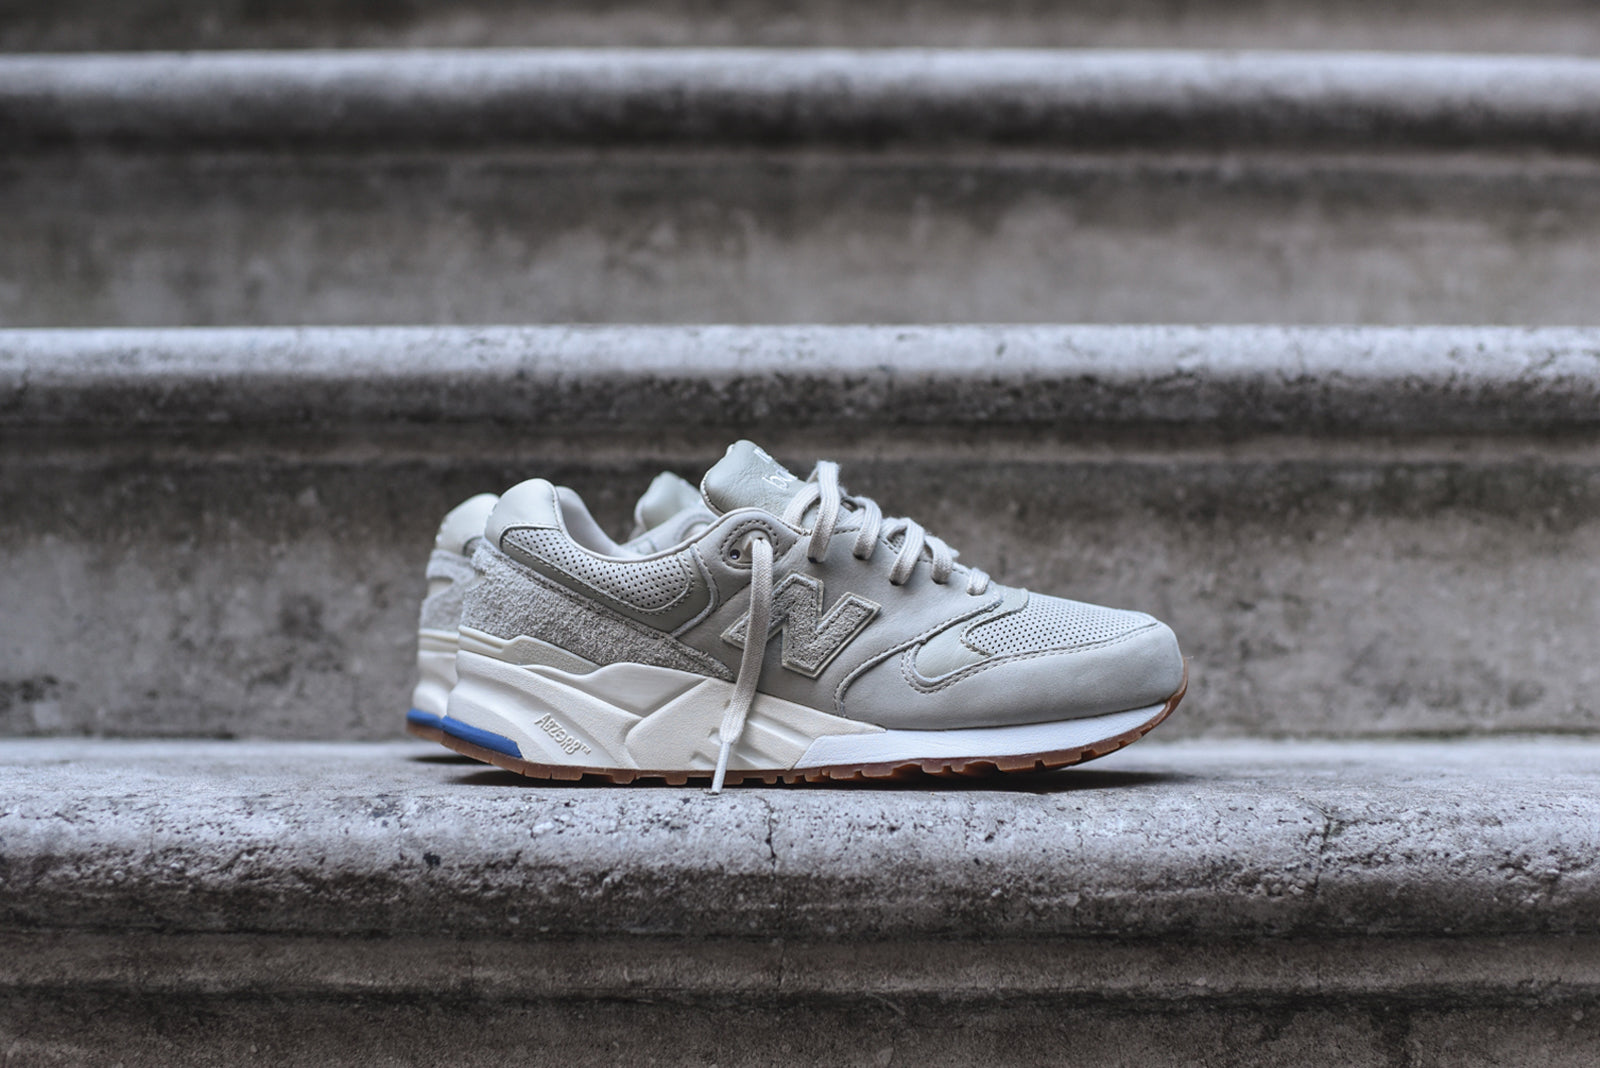 nouveau style 33523 37202 New Balance ML999 - Powder White / Angora – Kith